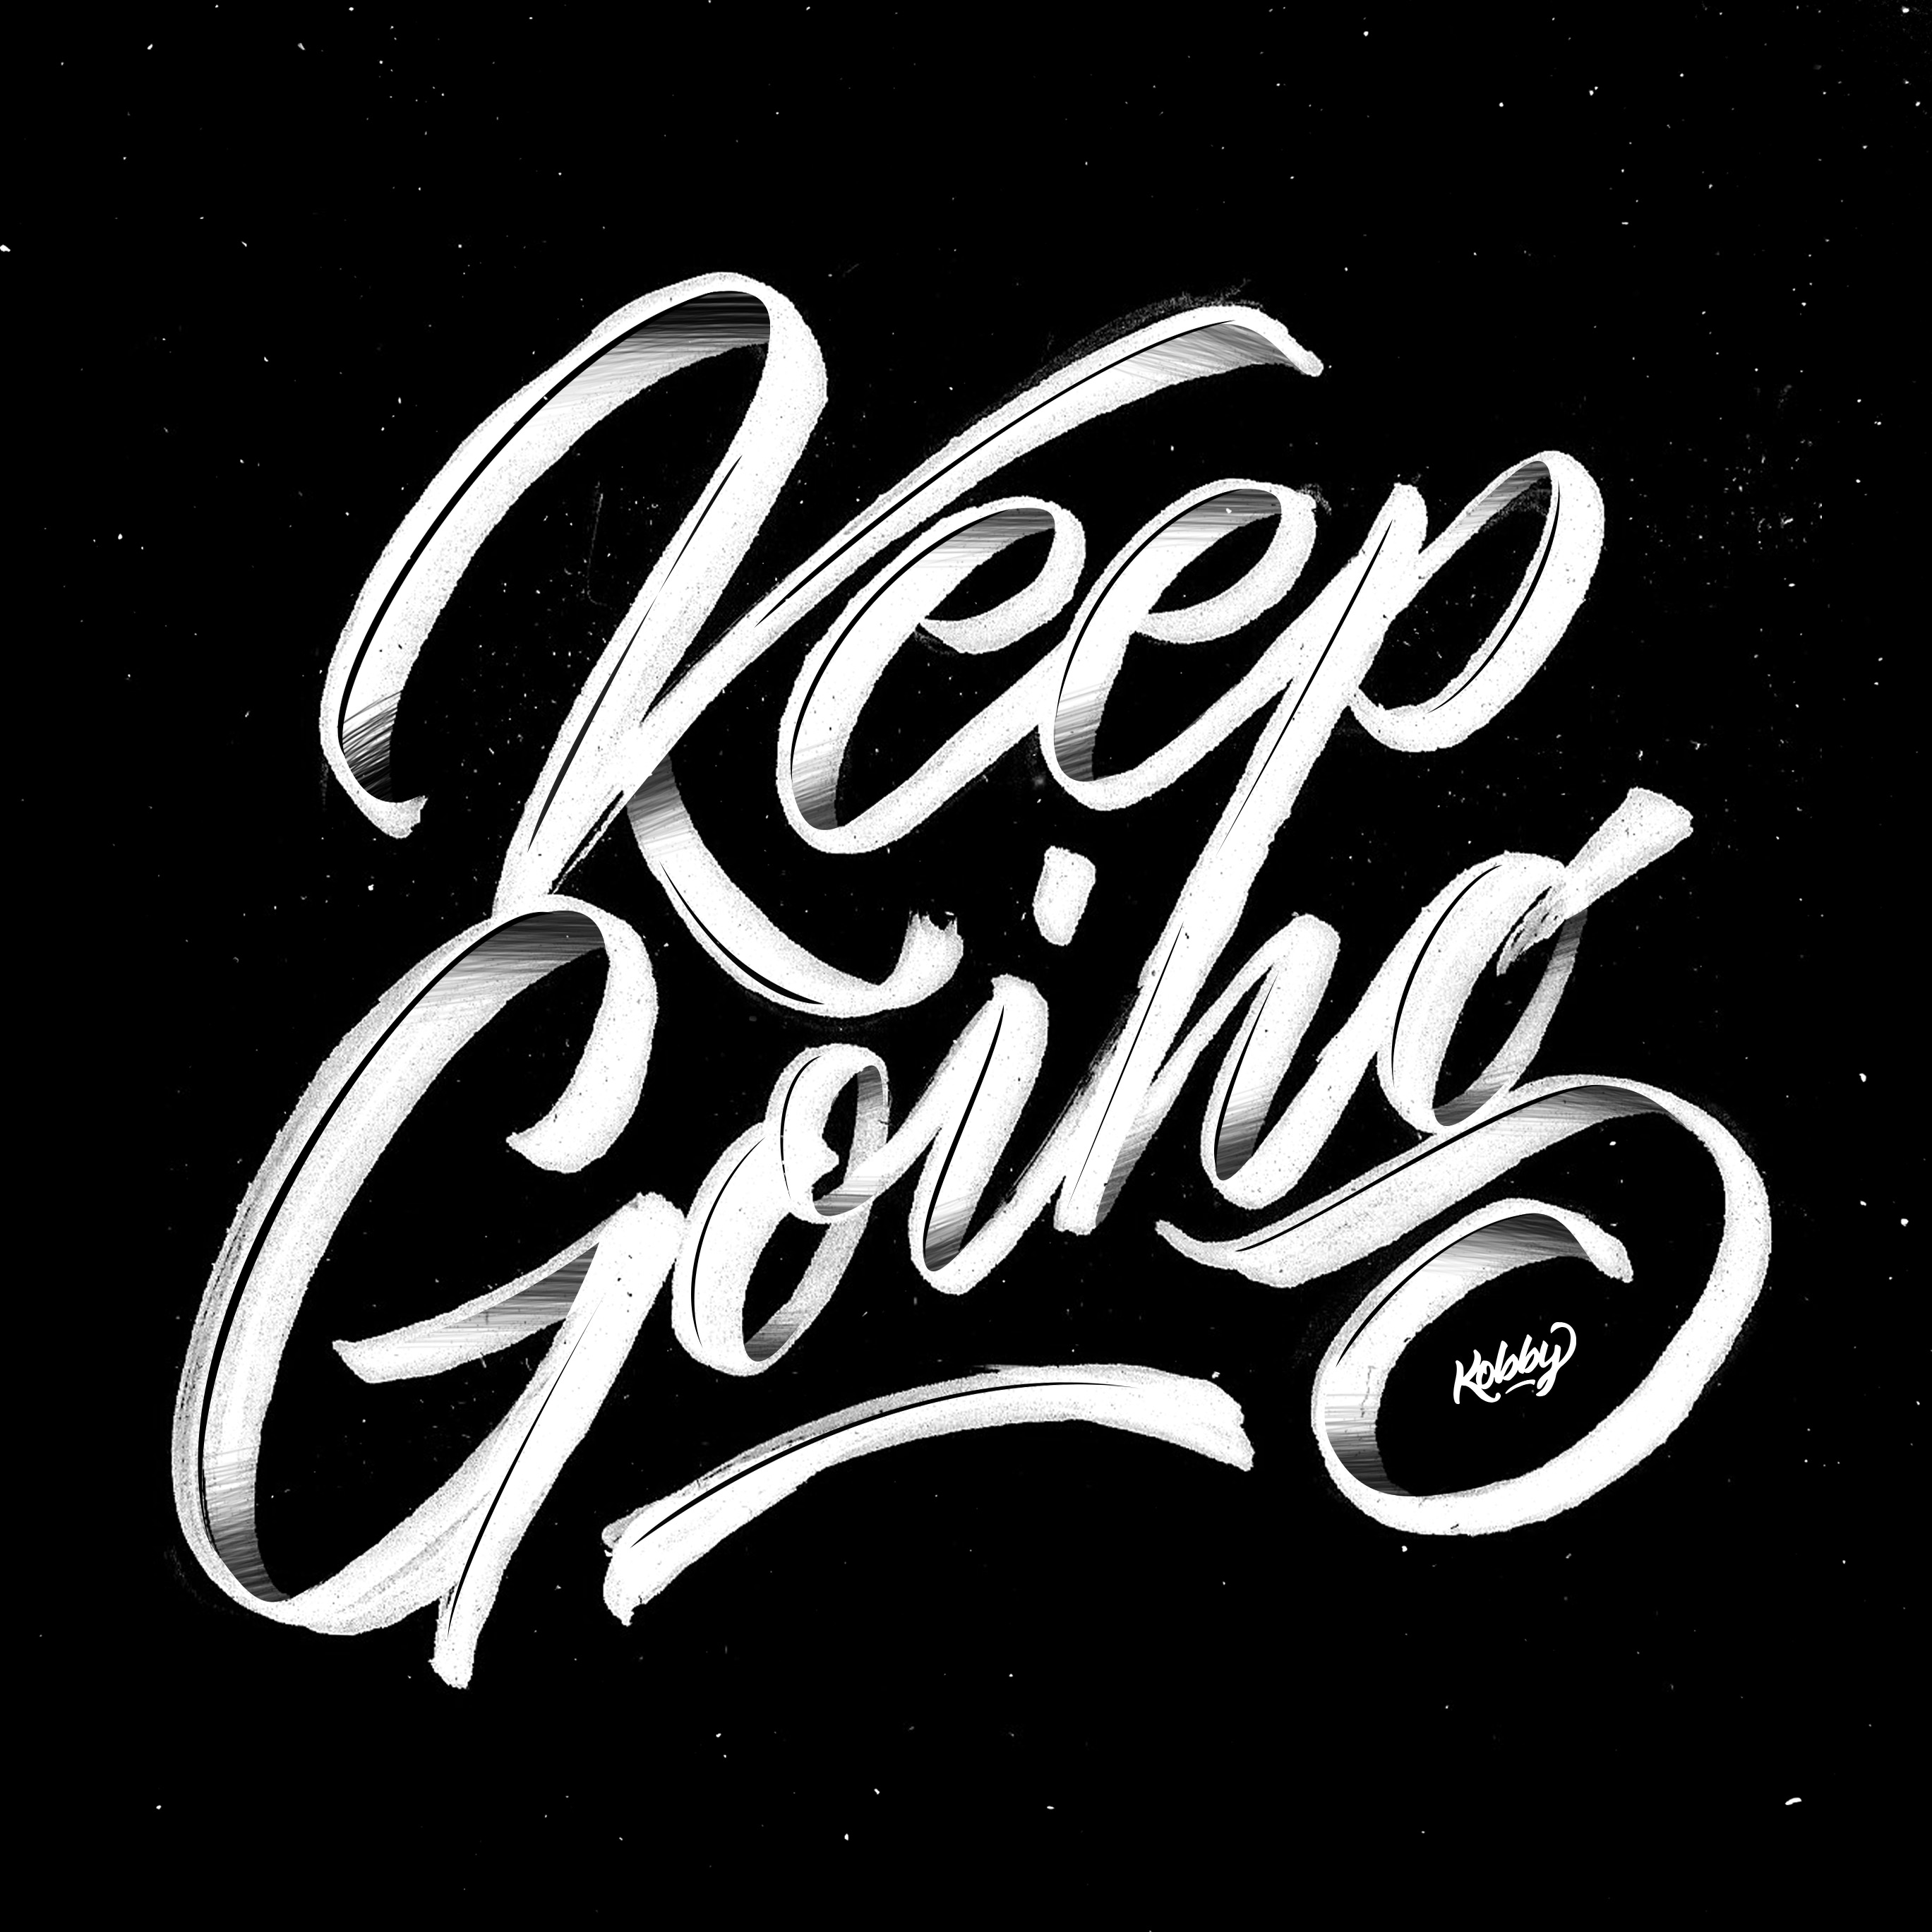 Keep going lettering